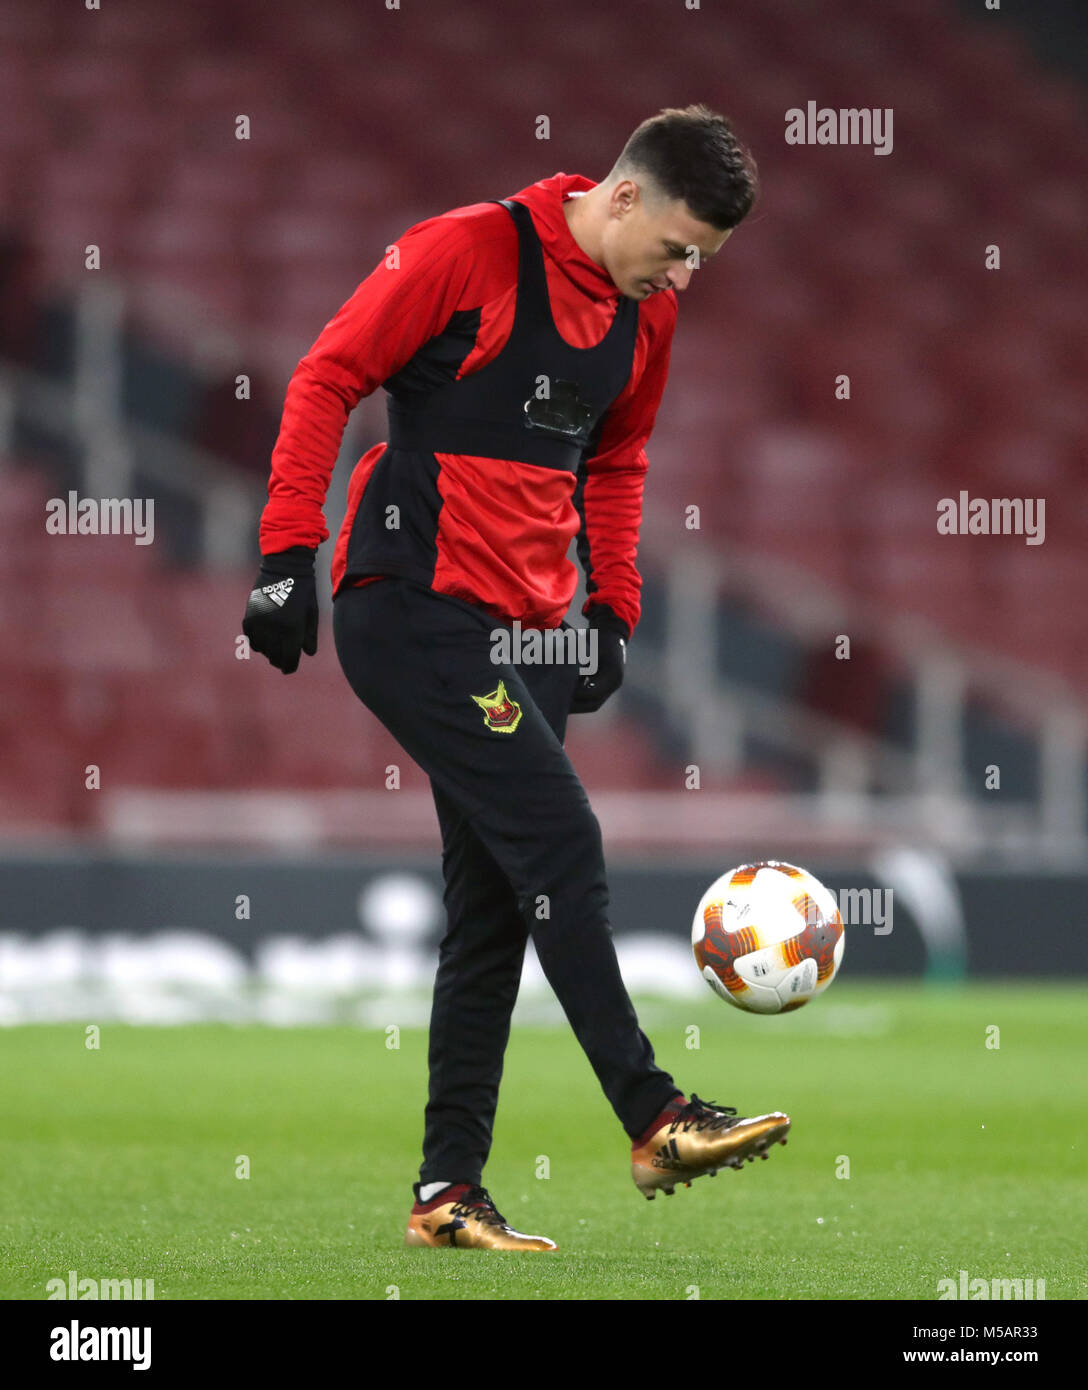 Ostersunds FK's Jamie Hopcutt during the training session at the Emirates Stadium, London. Stock Photo